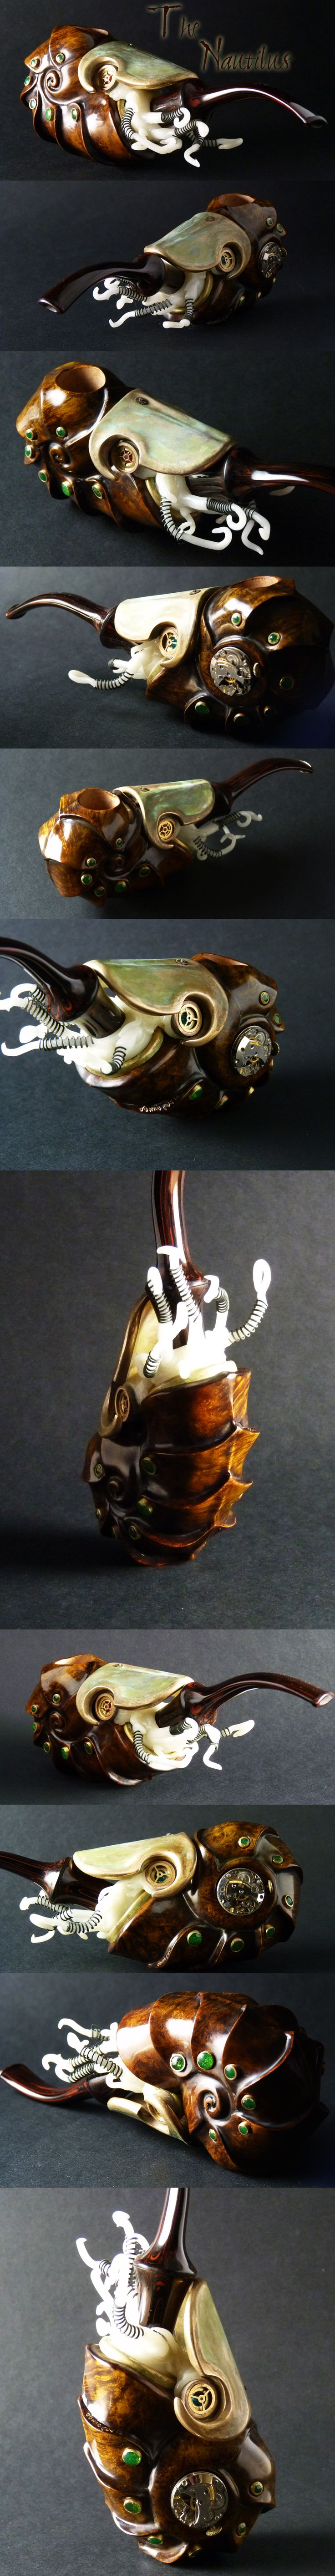 The Nautilus, by Stephen Downie. Yes, this is a pipe for smoking pipe tobacco. AWESOME.